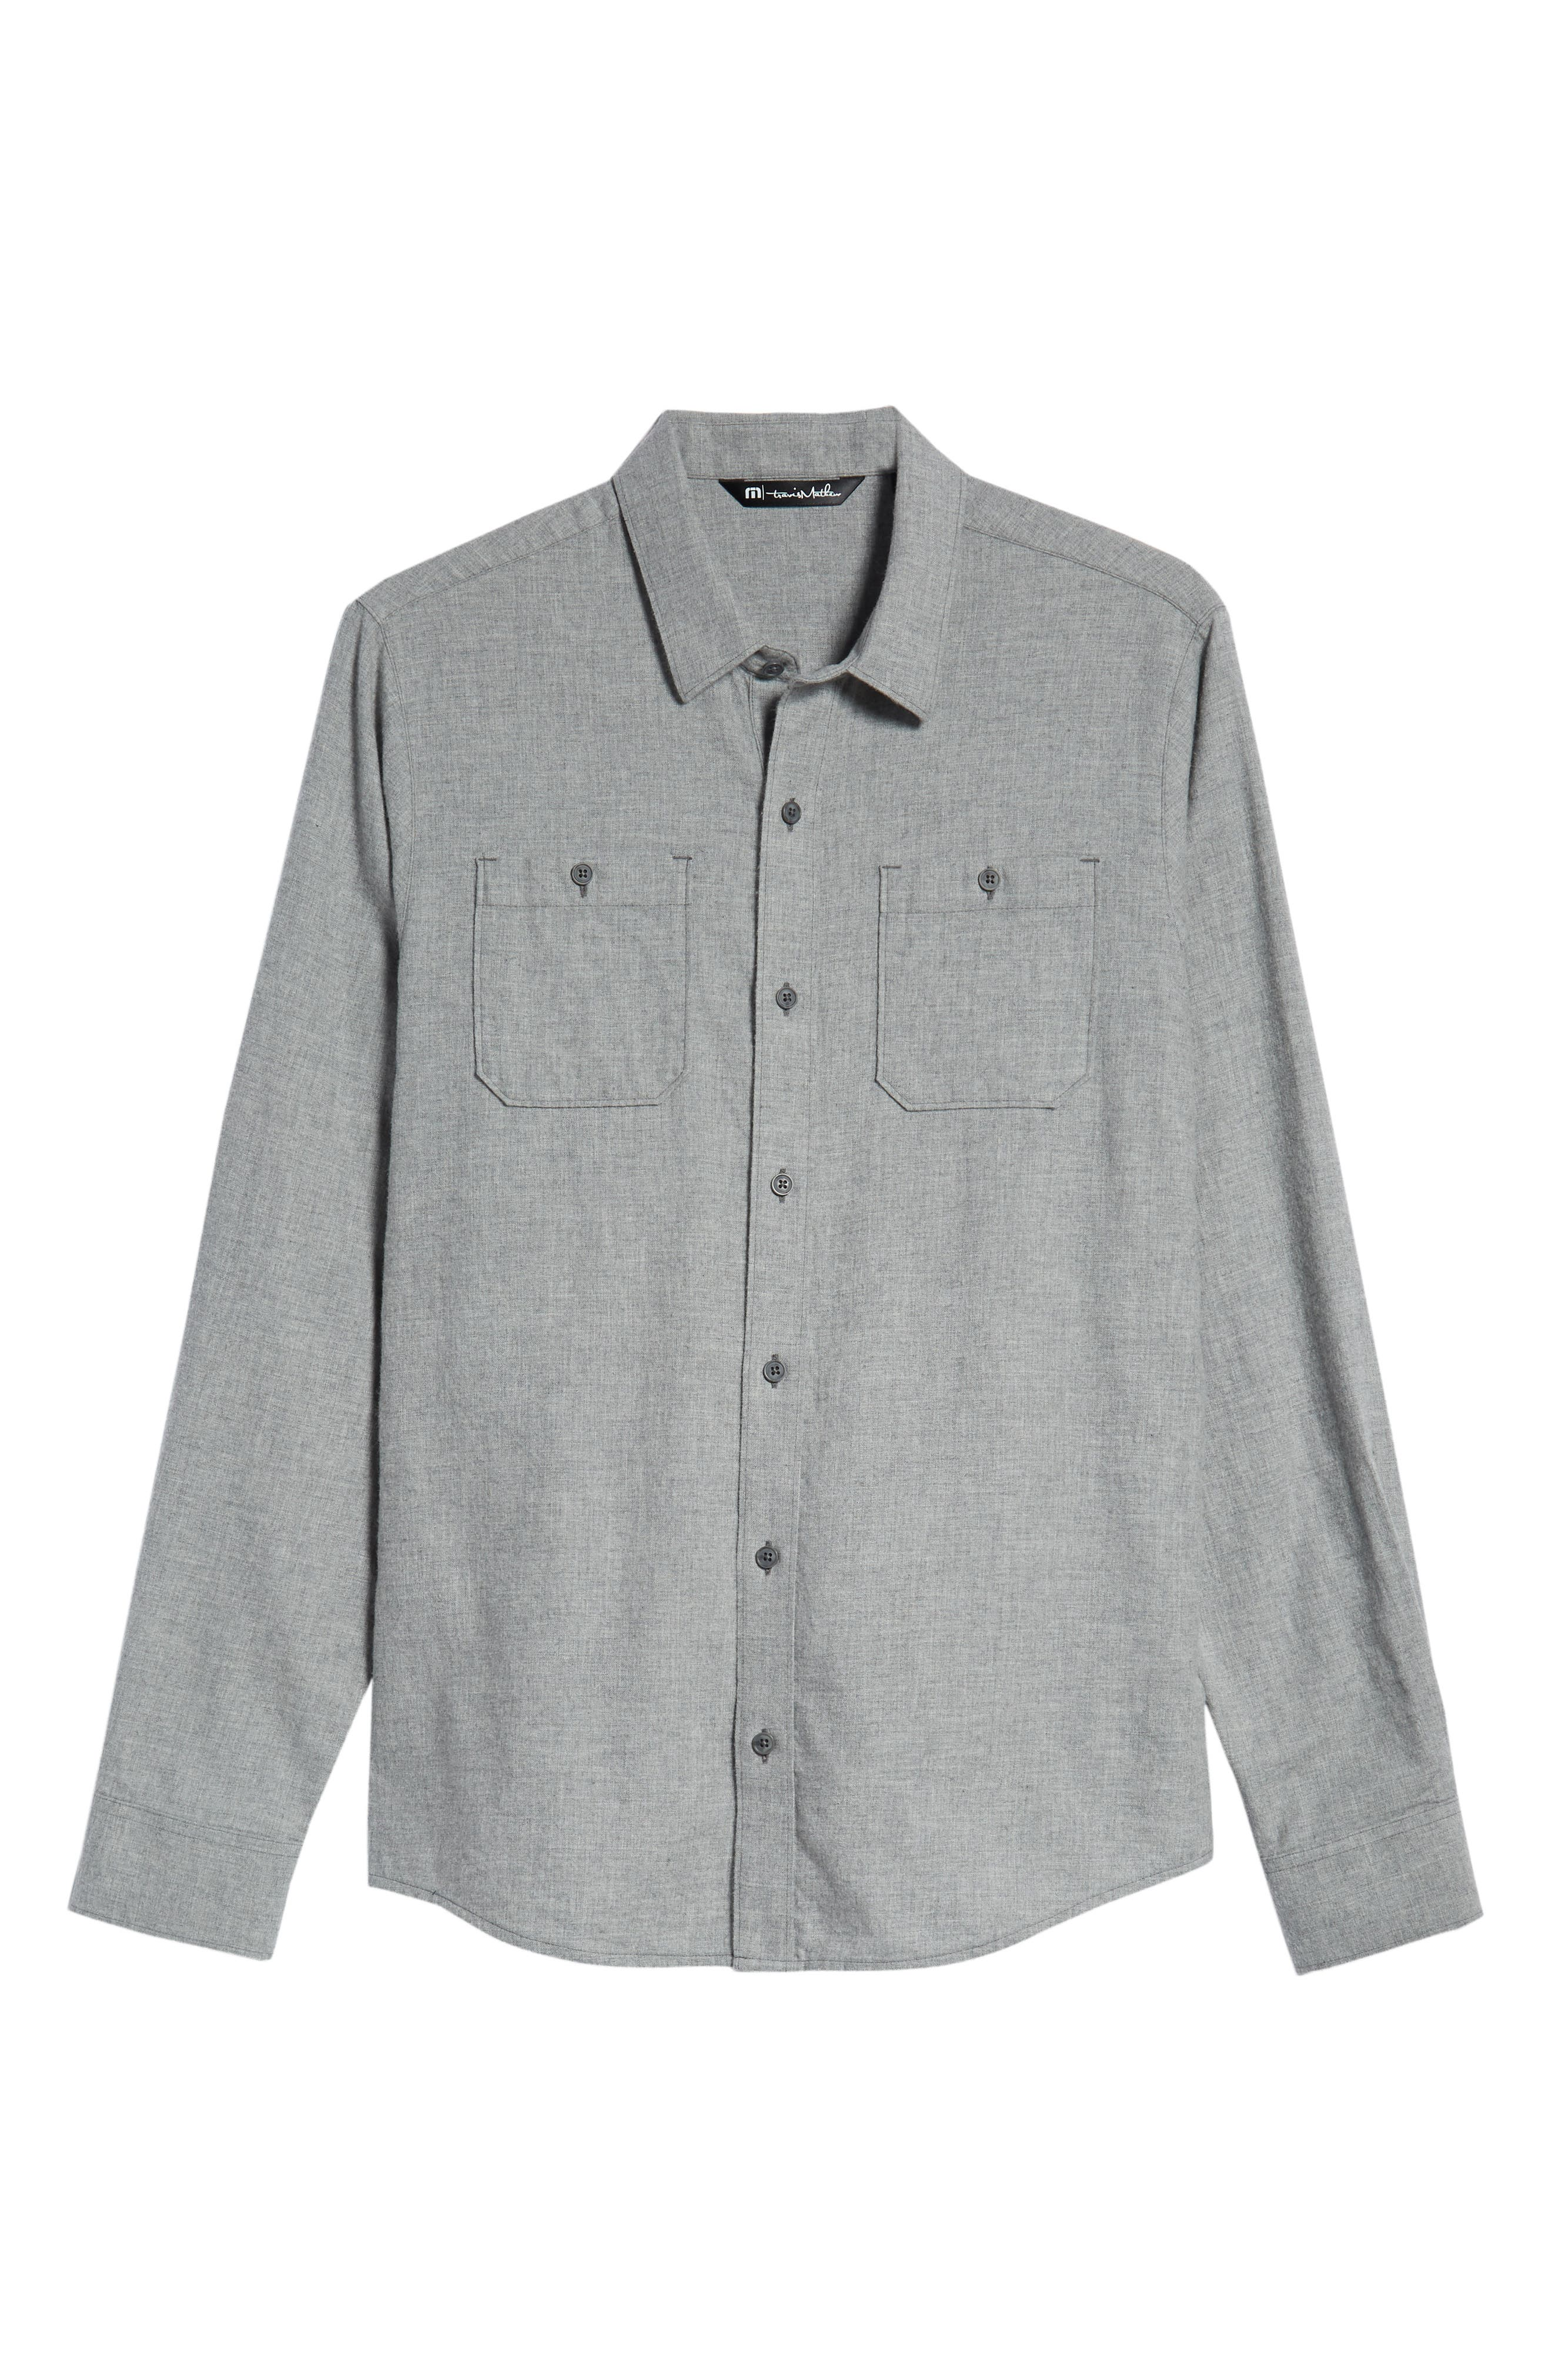 Hefe Regular Fit Flannel Sport Shirt,                             Alternate thumbnail 5, color,                             GREY QUITE SHADE